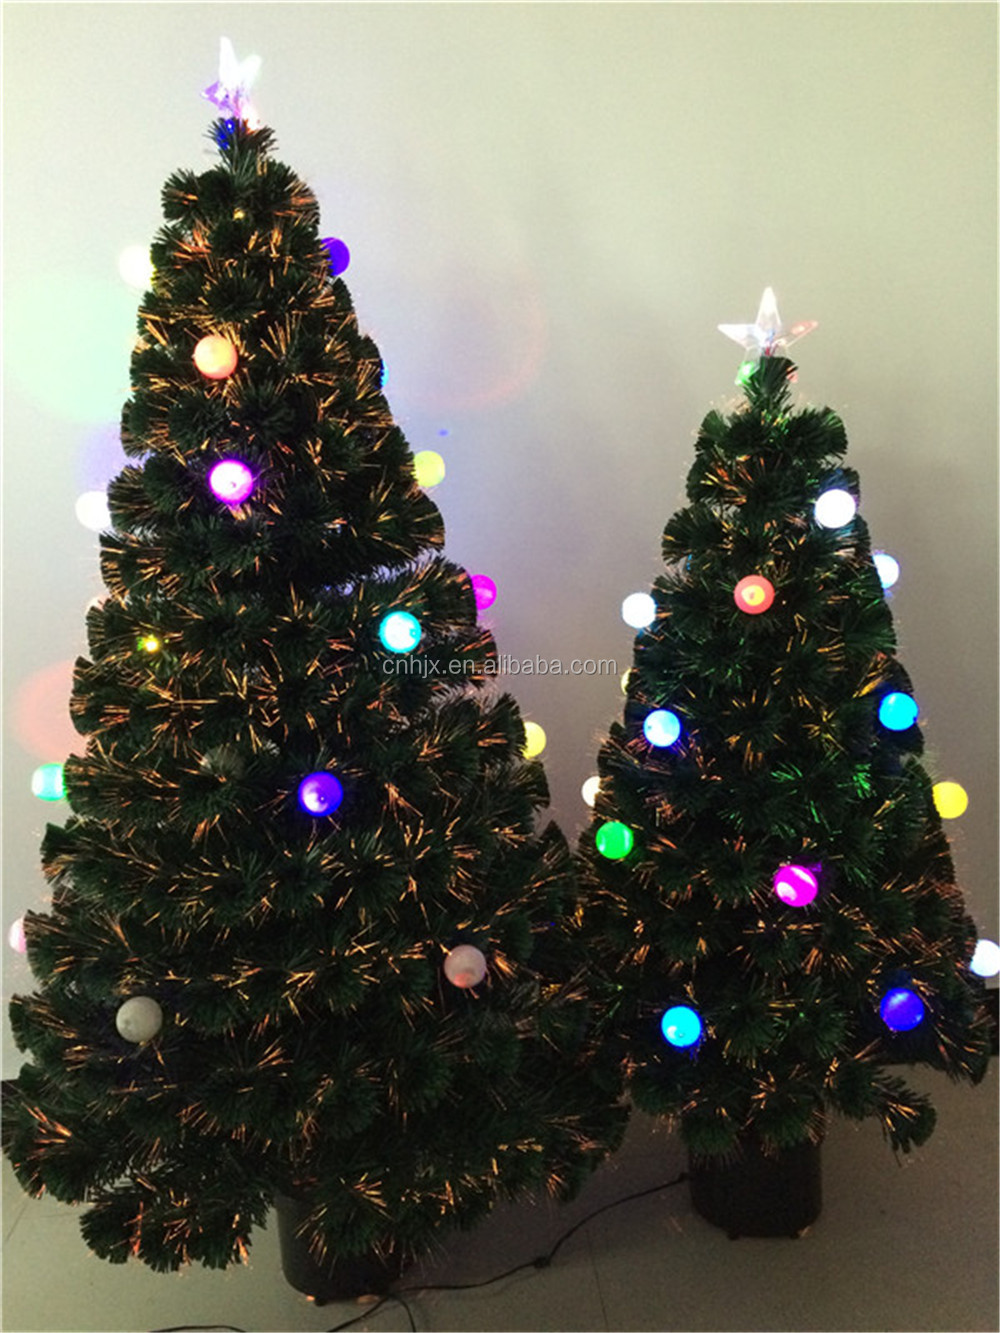 Small CBRL Fiber Optic Artificial Christmas Tree With Color Changing Ball